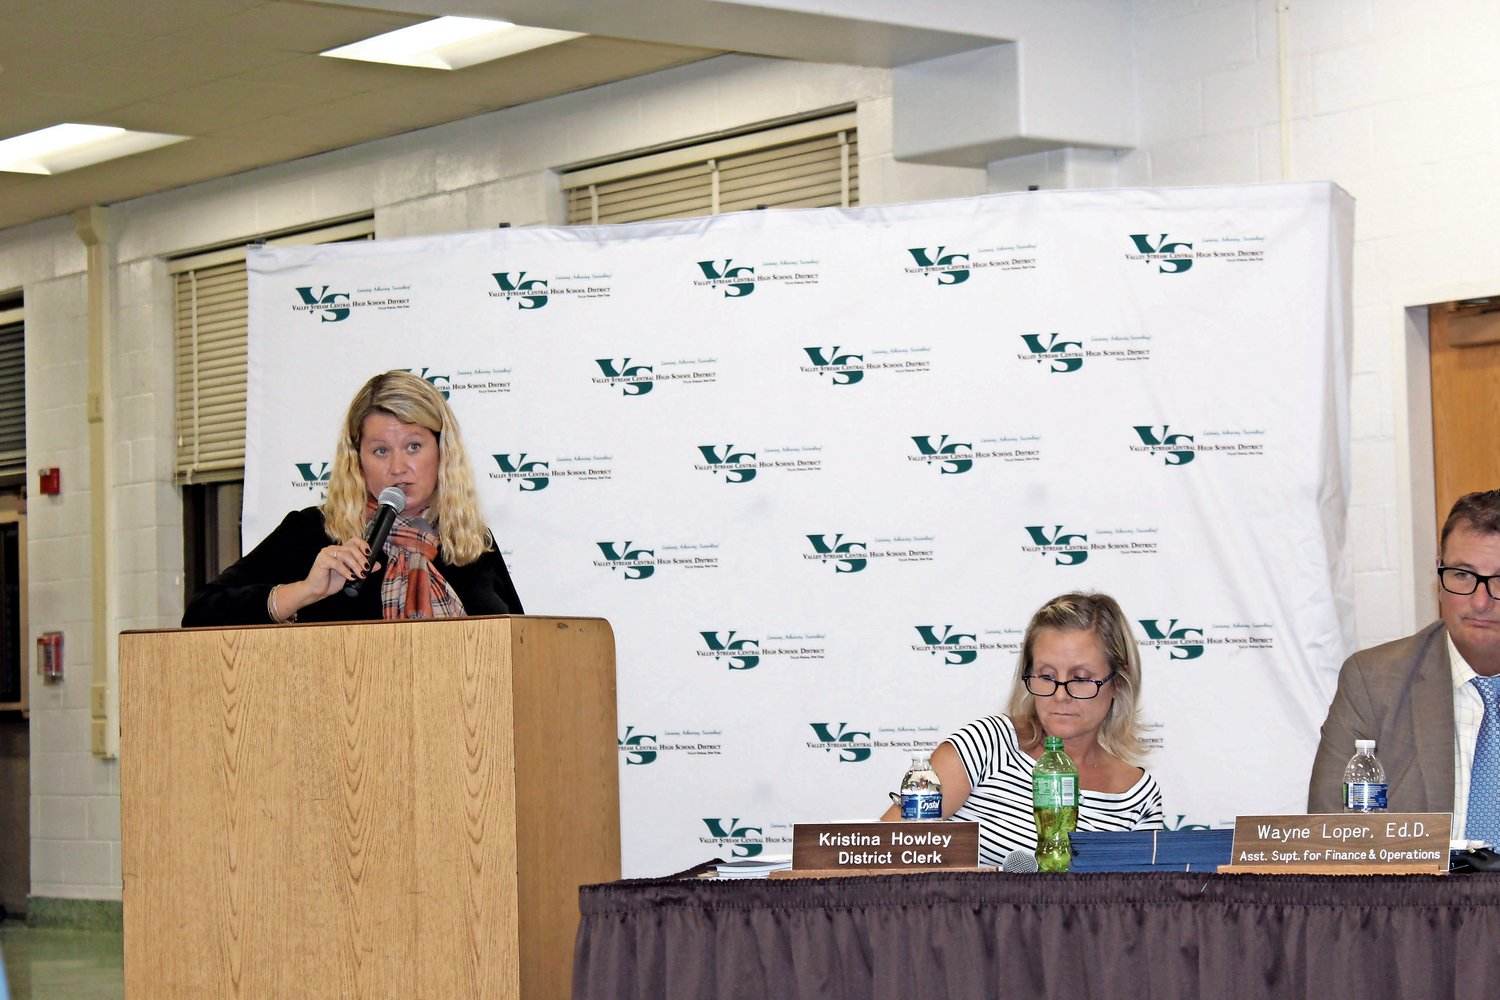 Lori Lang, left, spoke about the need for after-school busing for private school students at a Board of Education meeting in October.